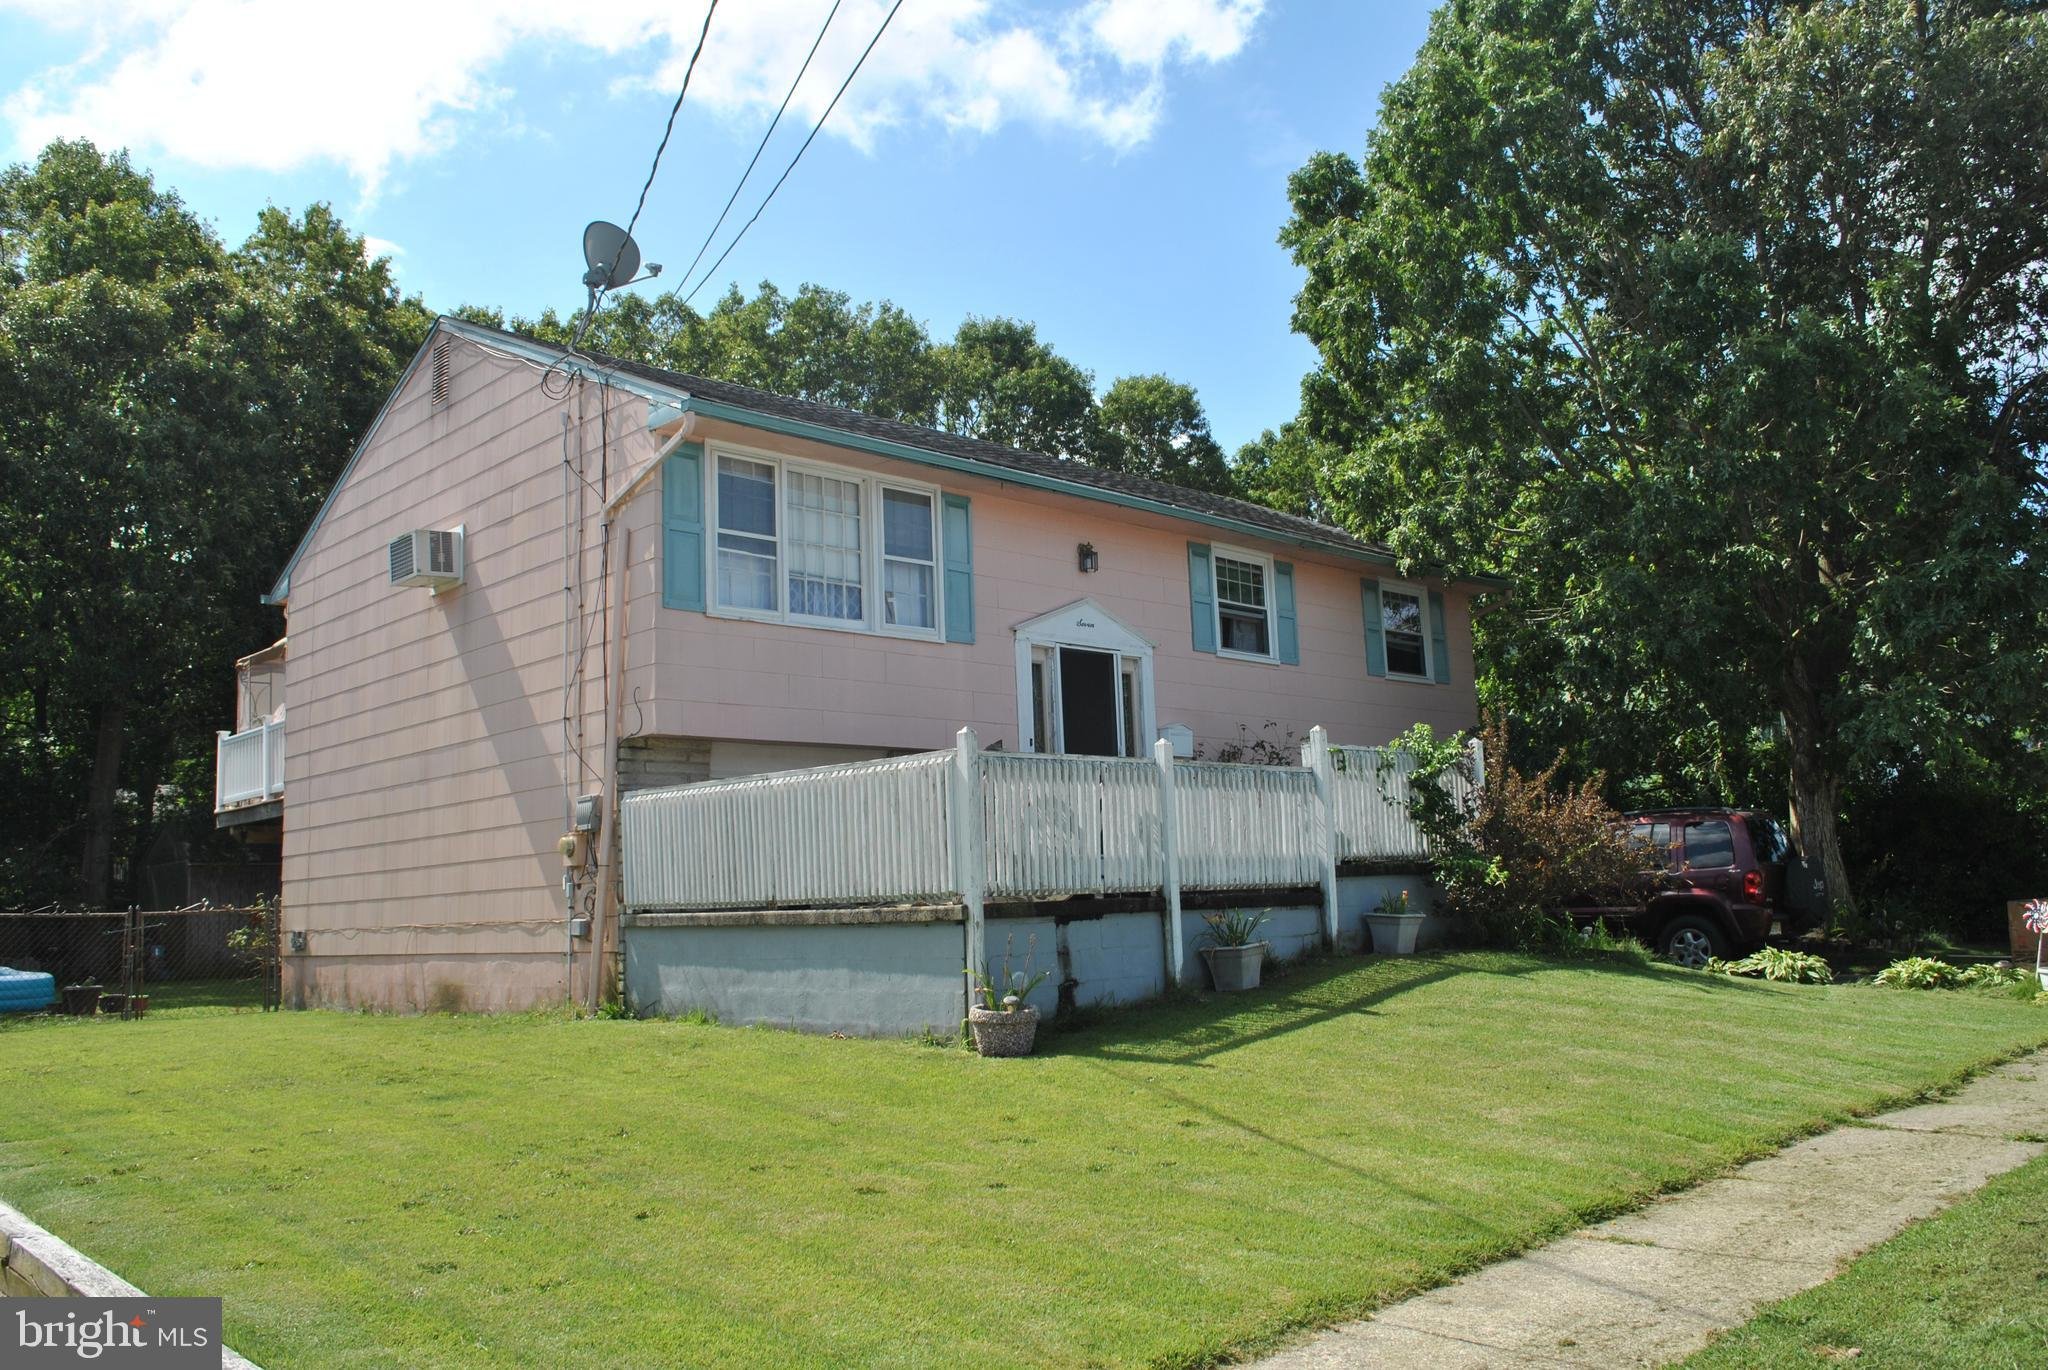 7 COOPER DRIVE, SOMERS POINT, NJ 08244